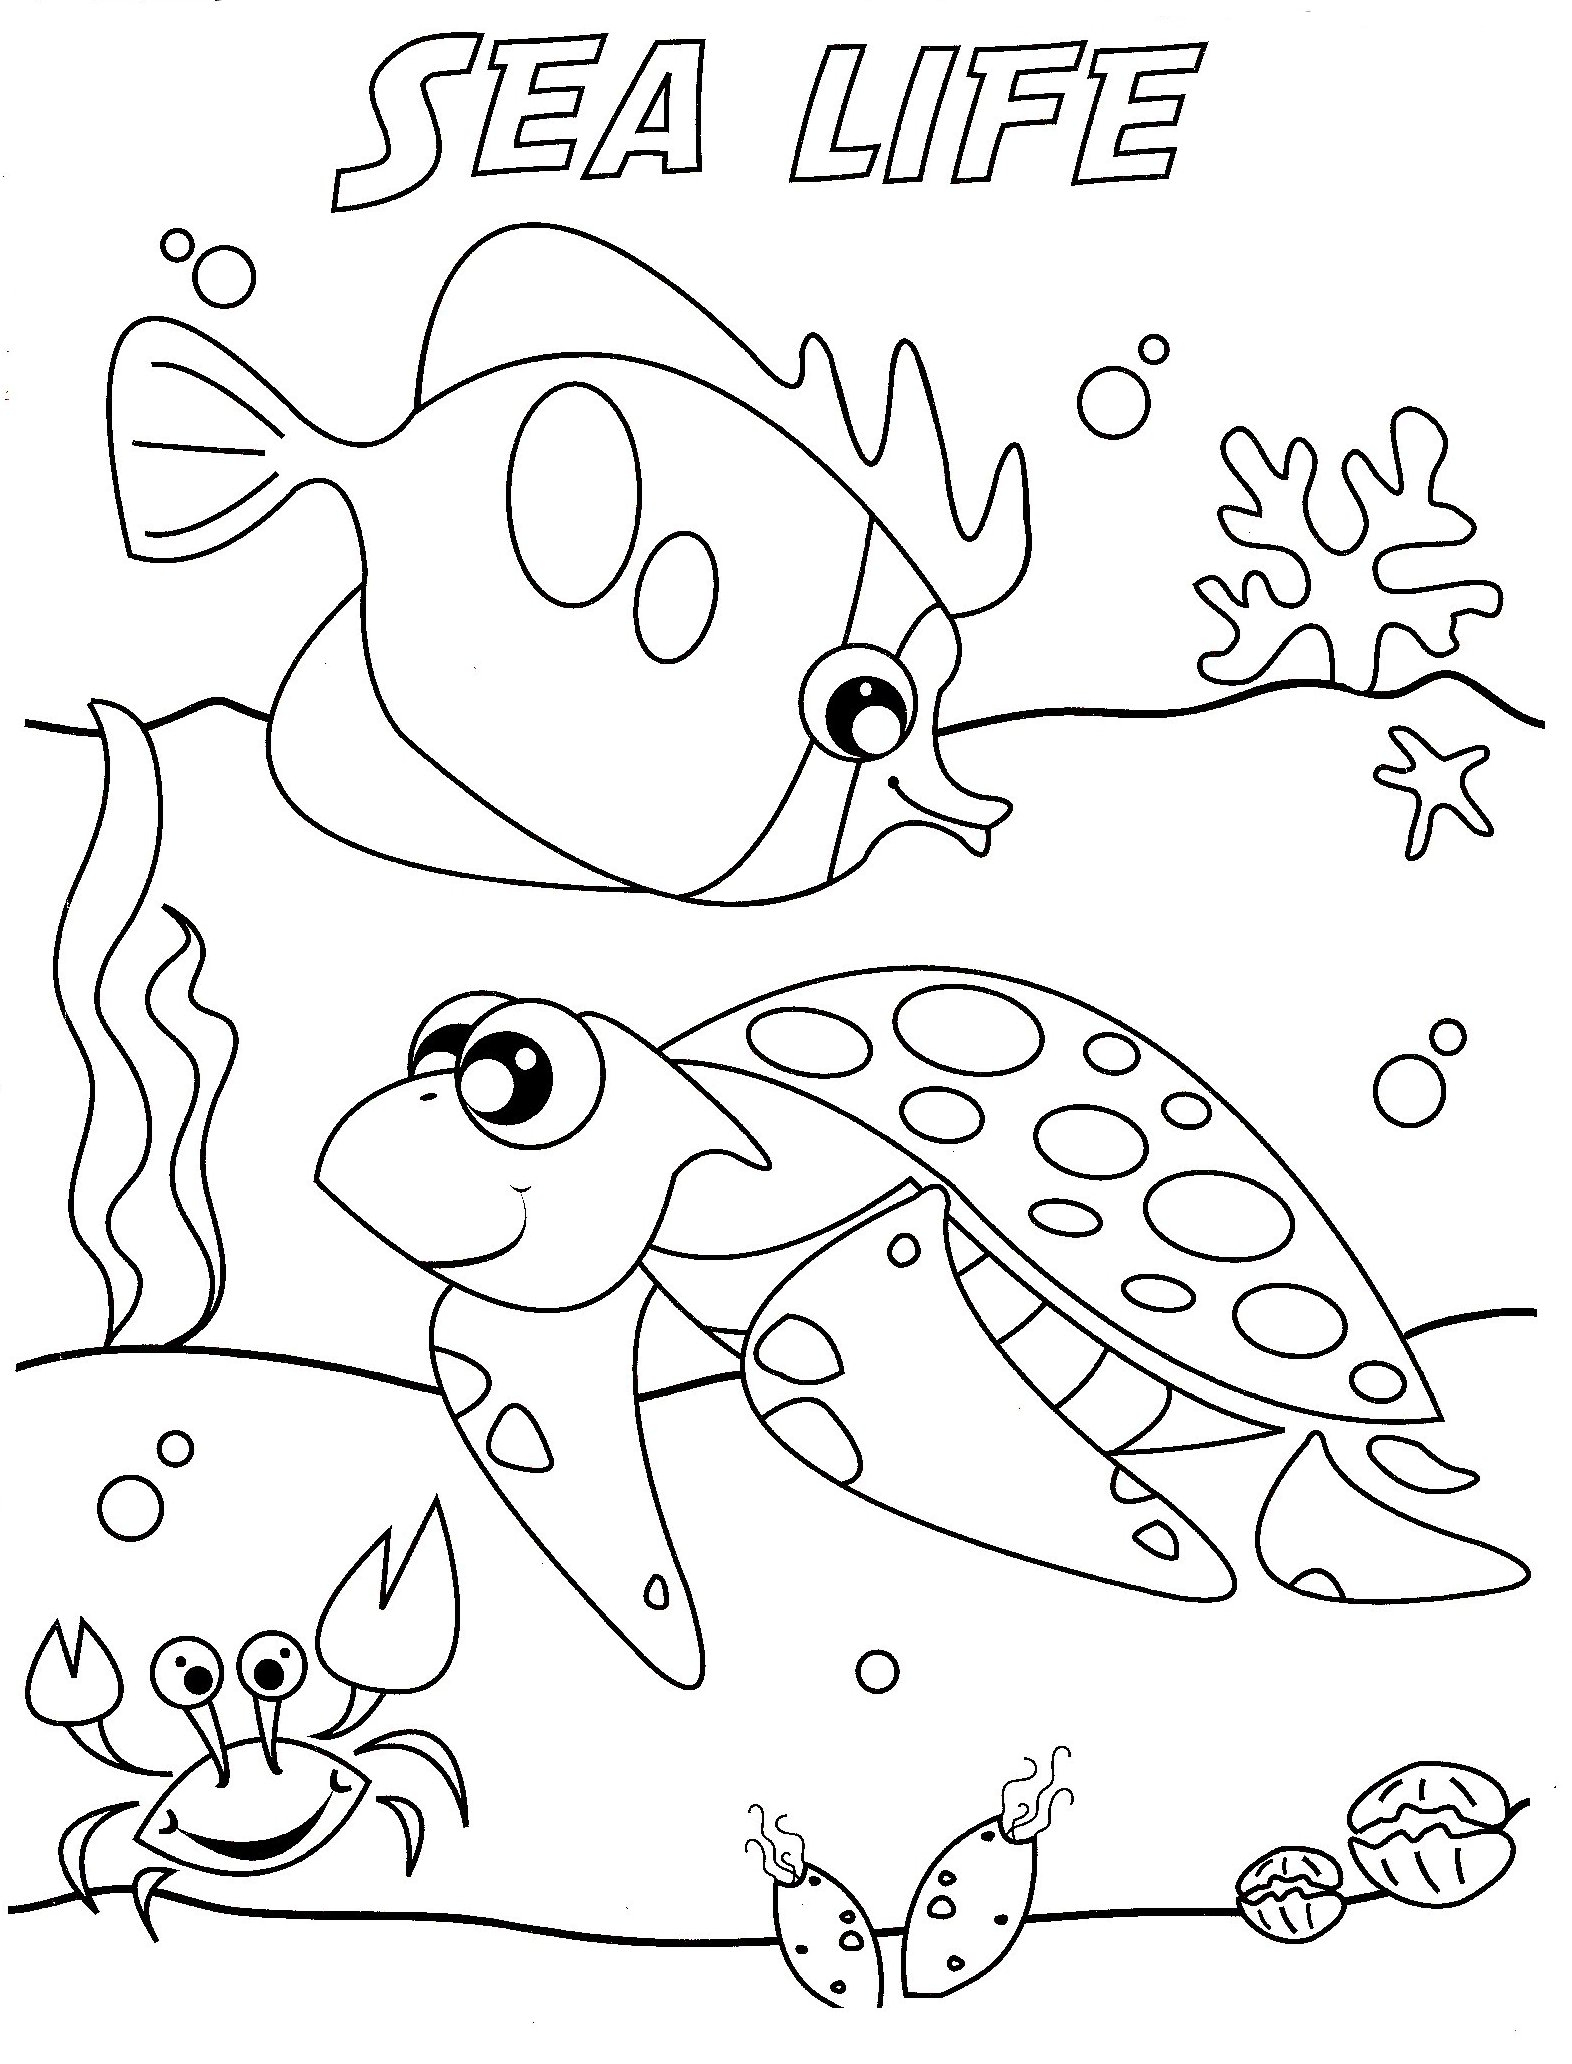 Sea Animals Coloring Pages For Kids At Getdrawings